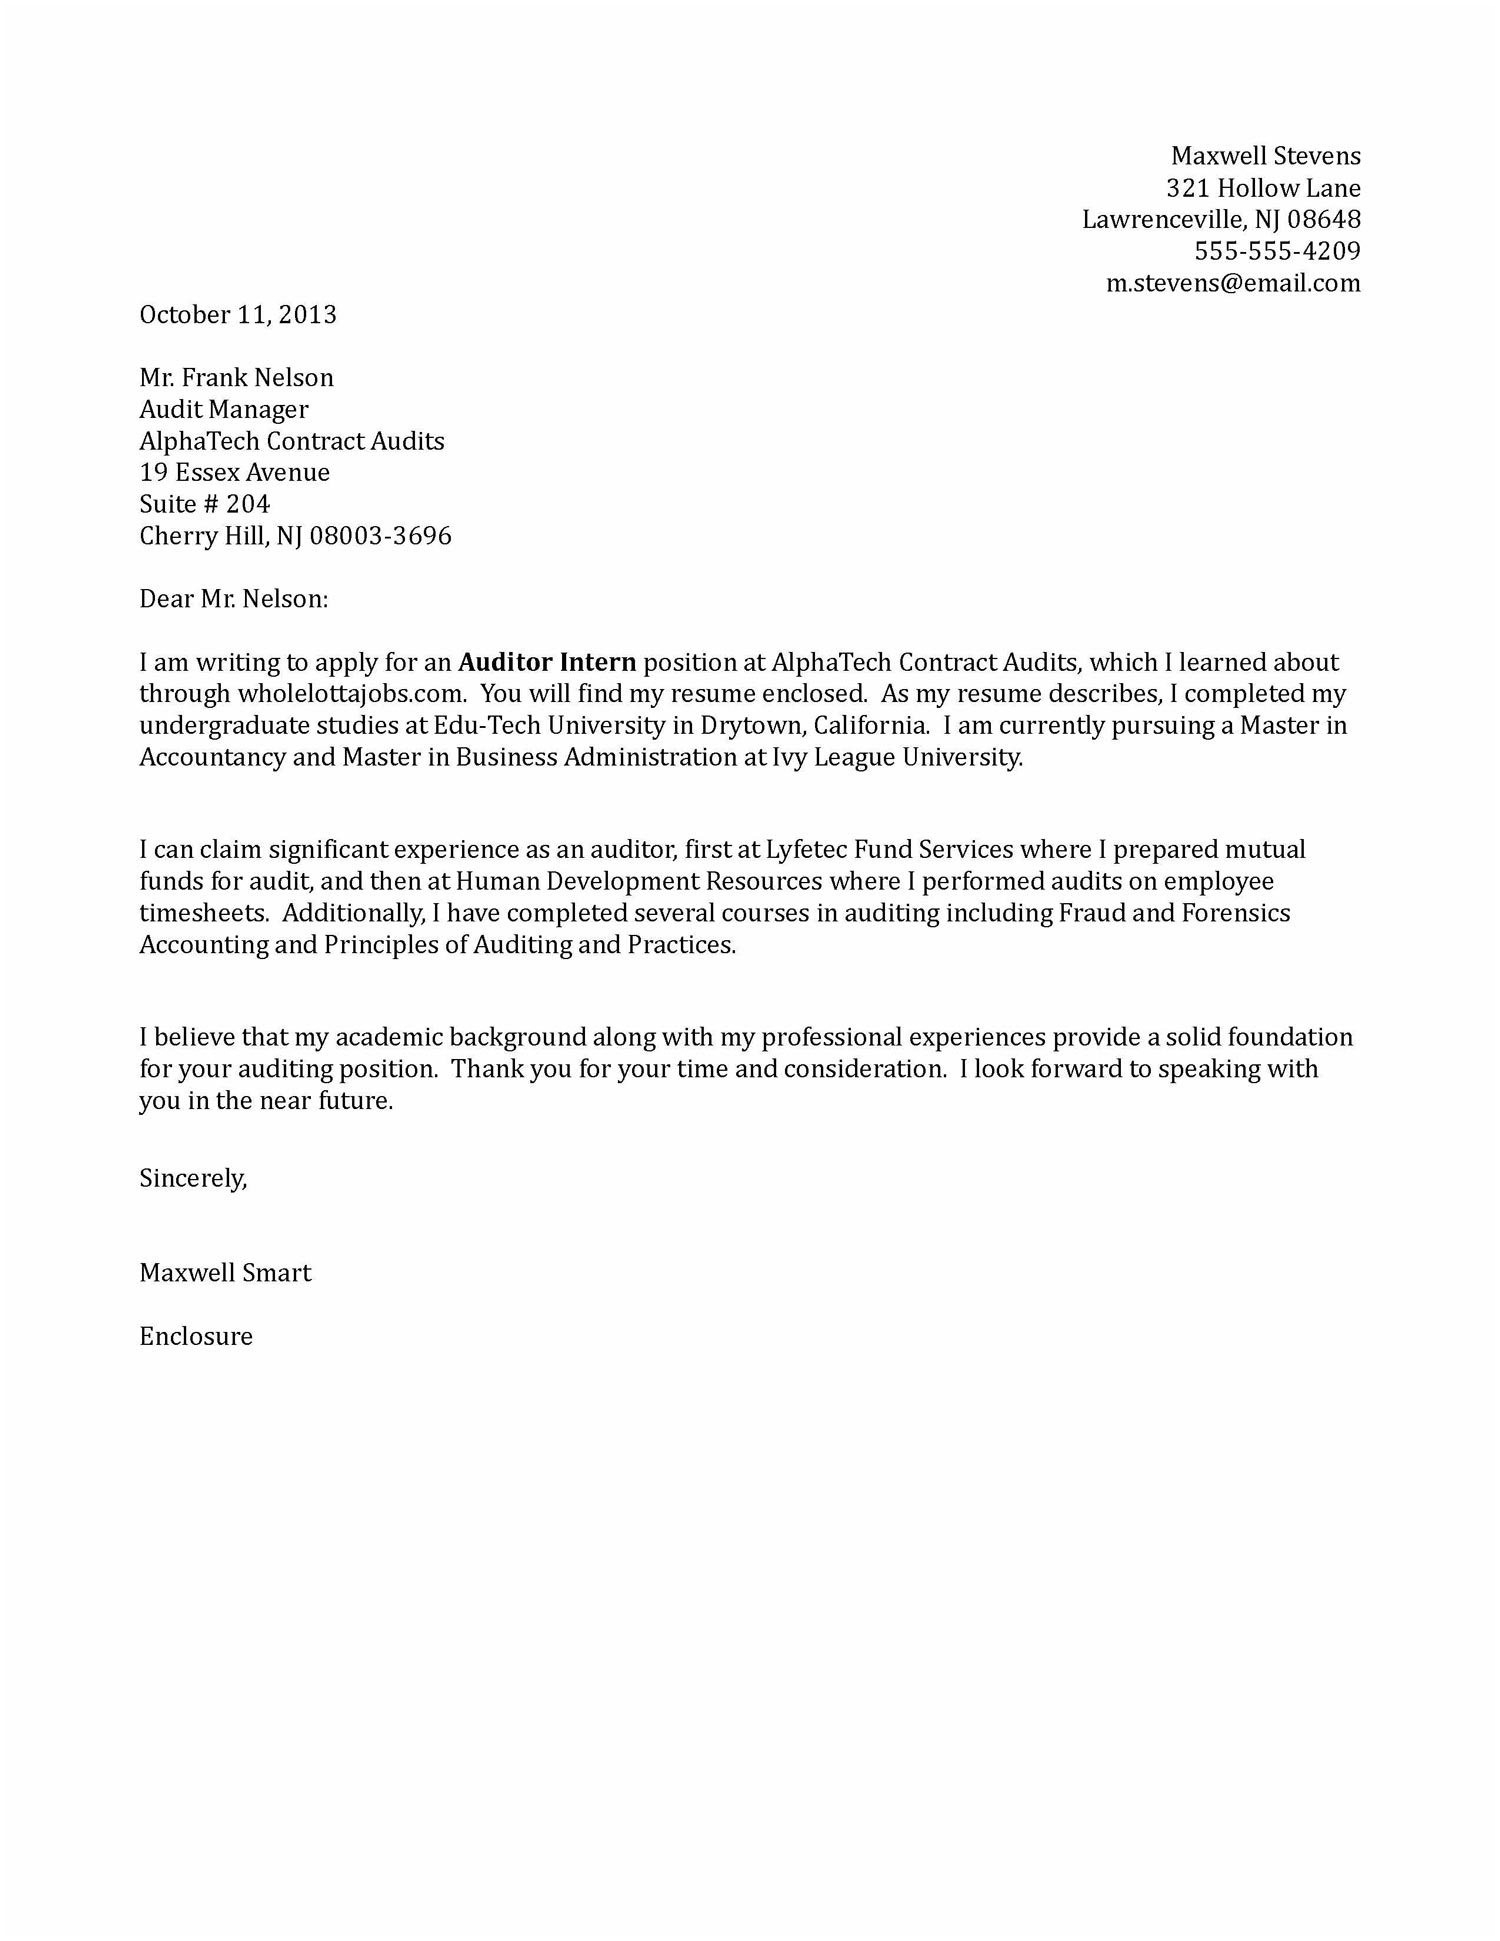 Letter to Congressman Template - Letter to Congressman